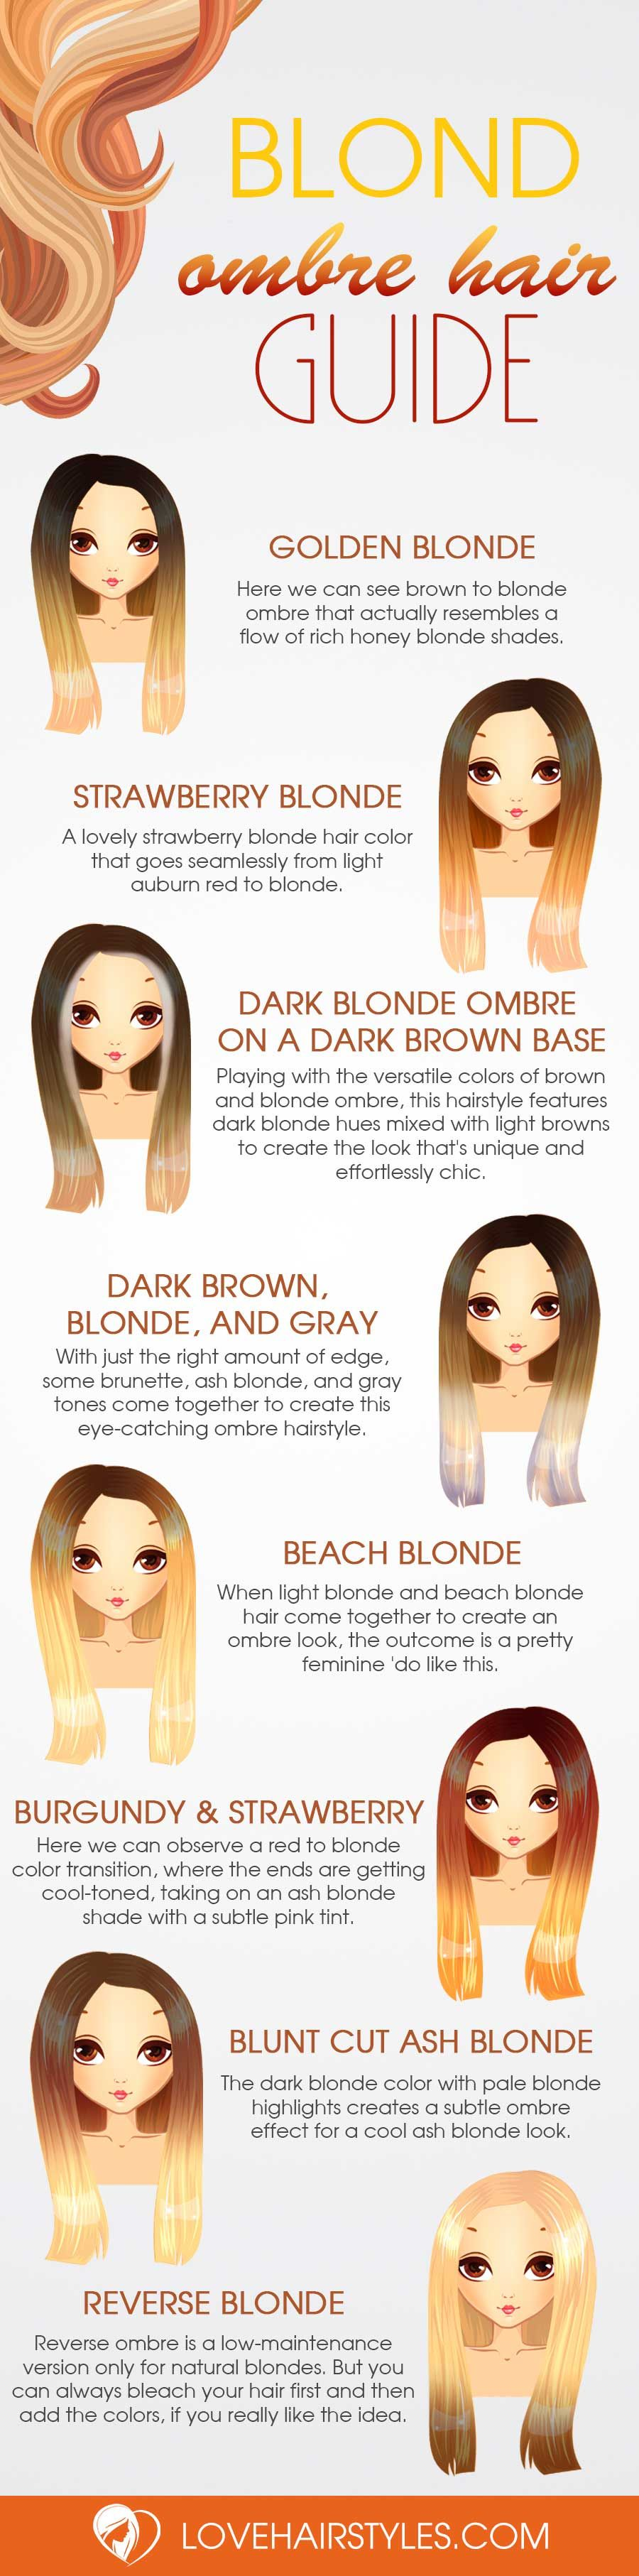 blonde ombre hair colors to try blonde ombre hair ombre hair